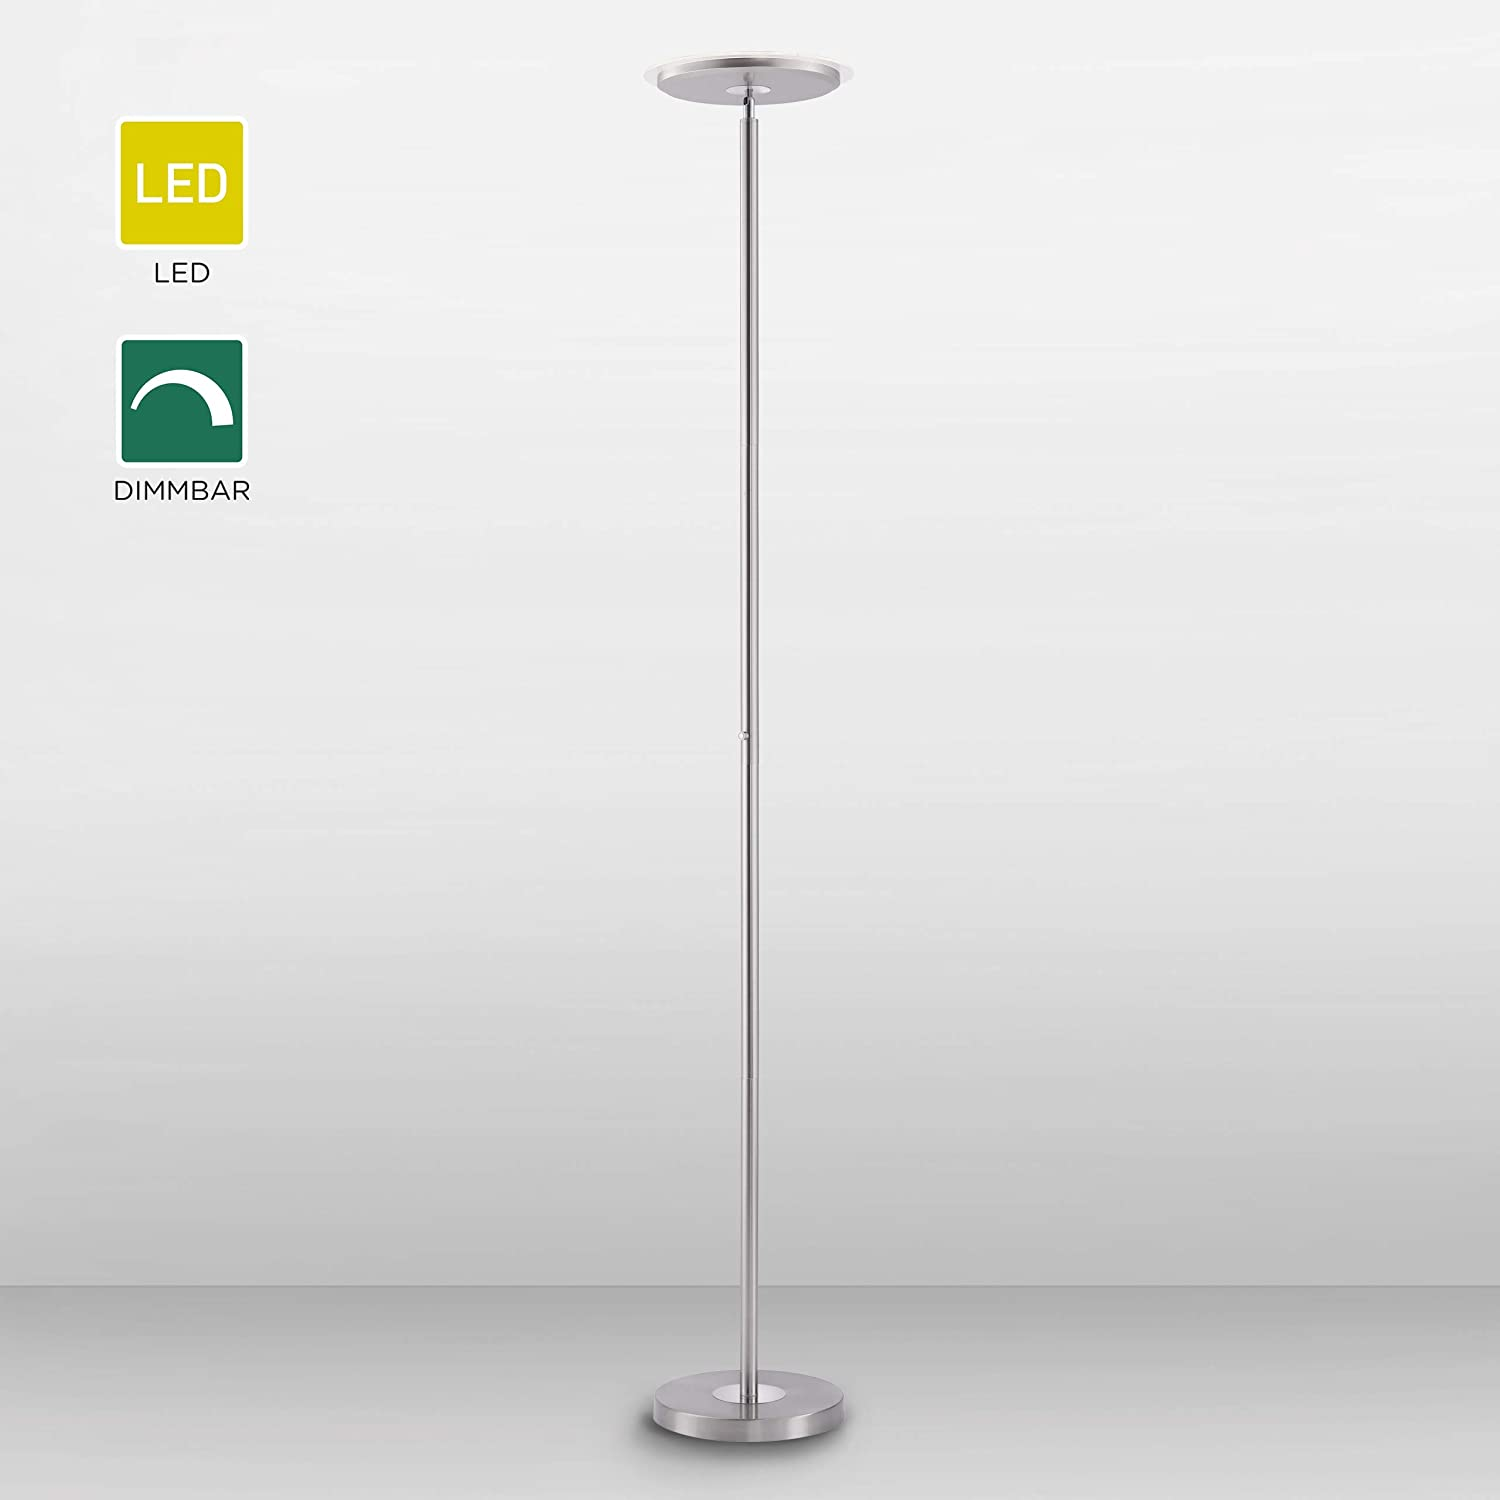 Led Deckenfluter Dimmbar Touch Dimmer Stehlampe 3000 Kelvin